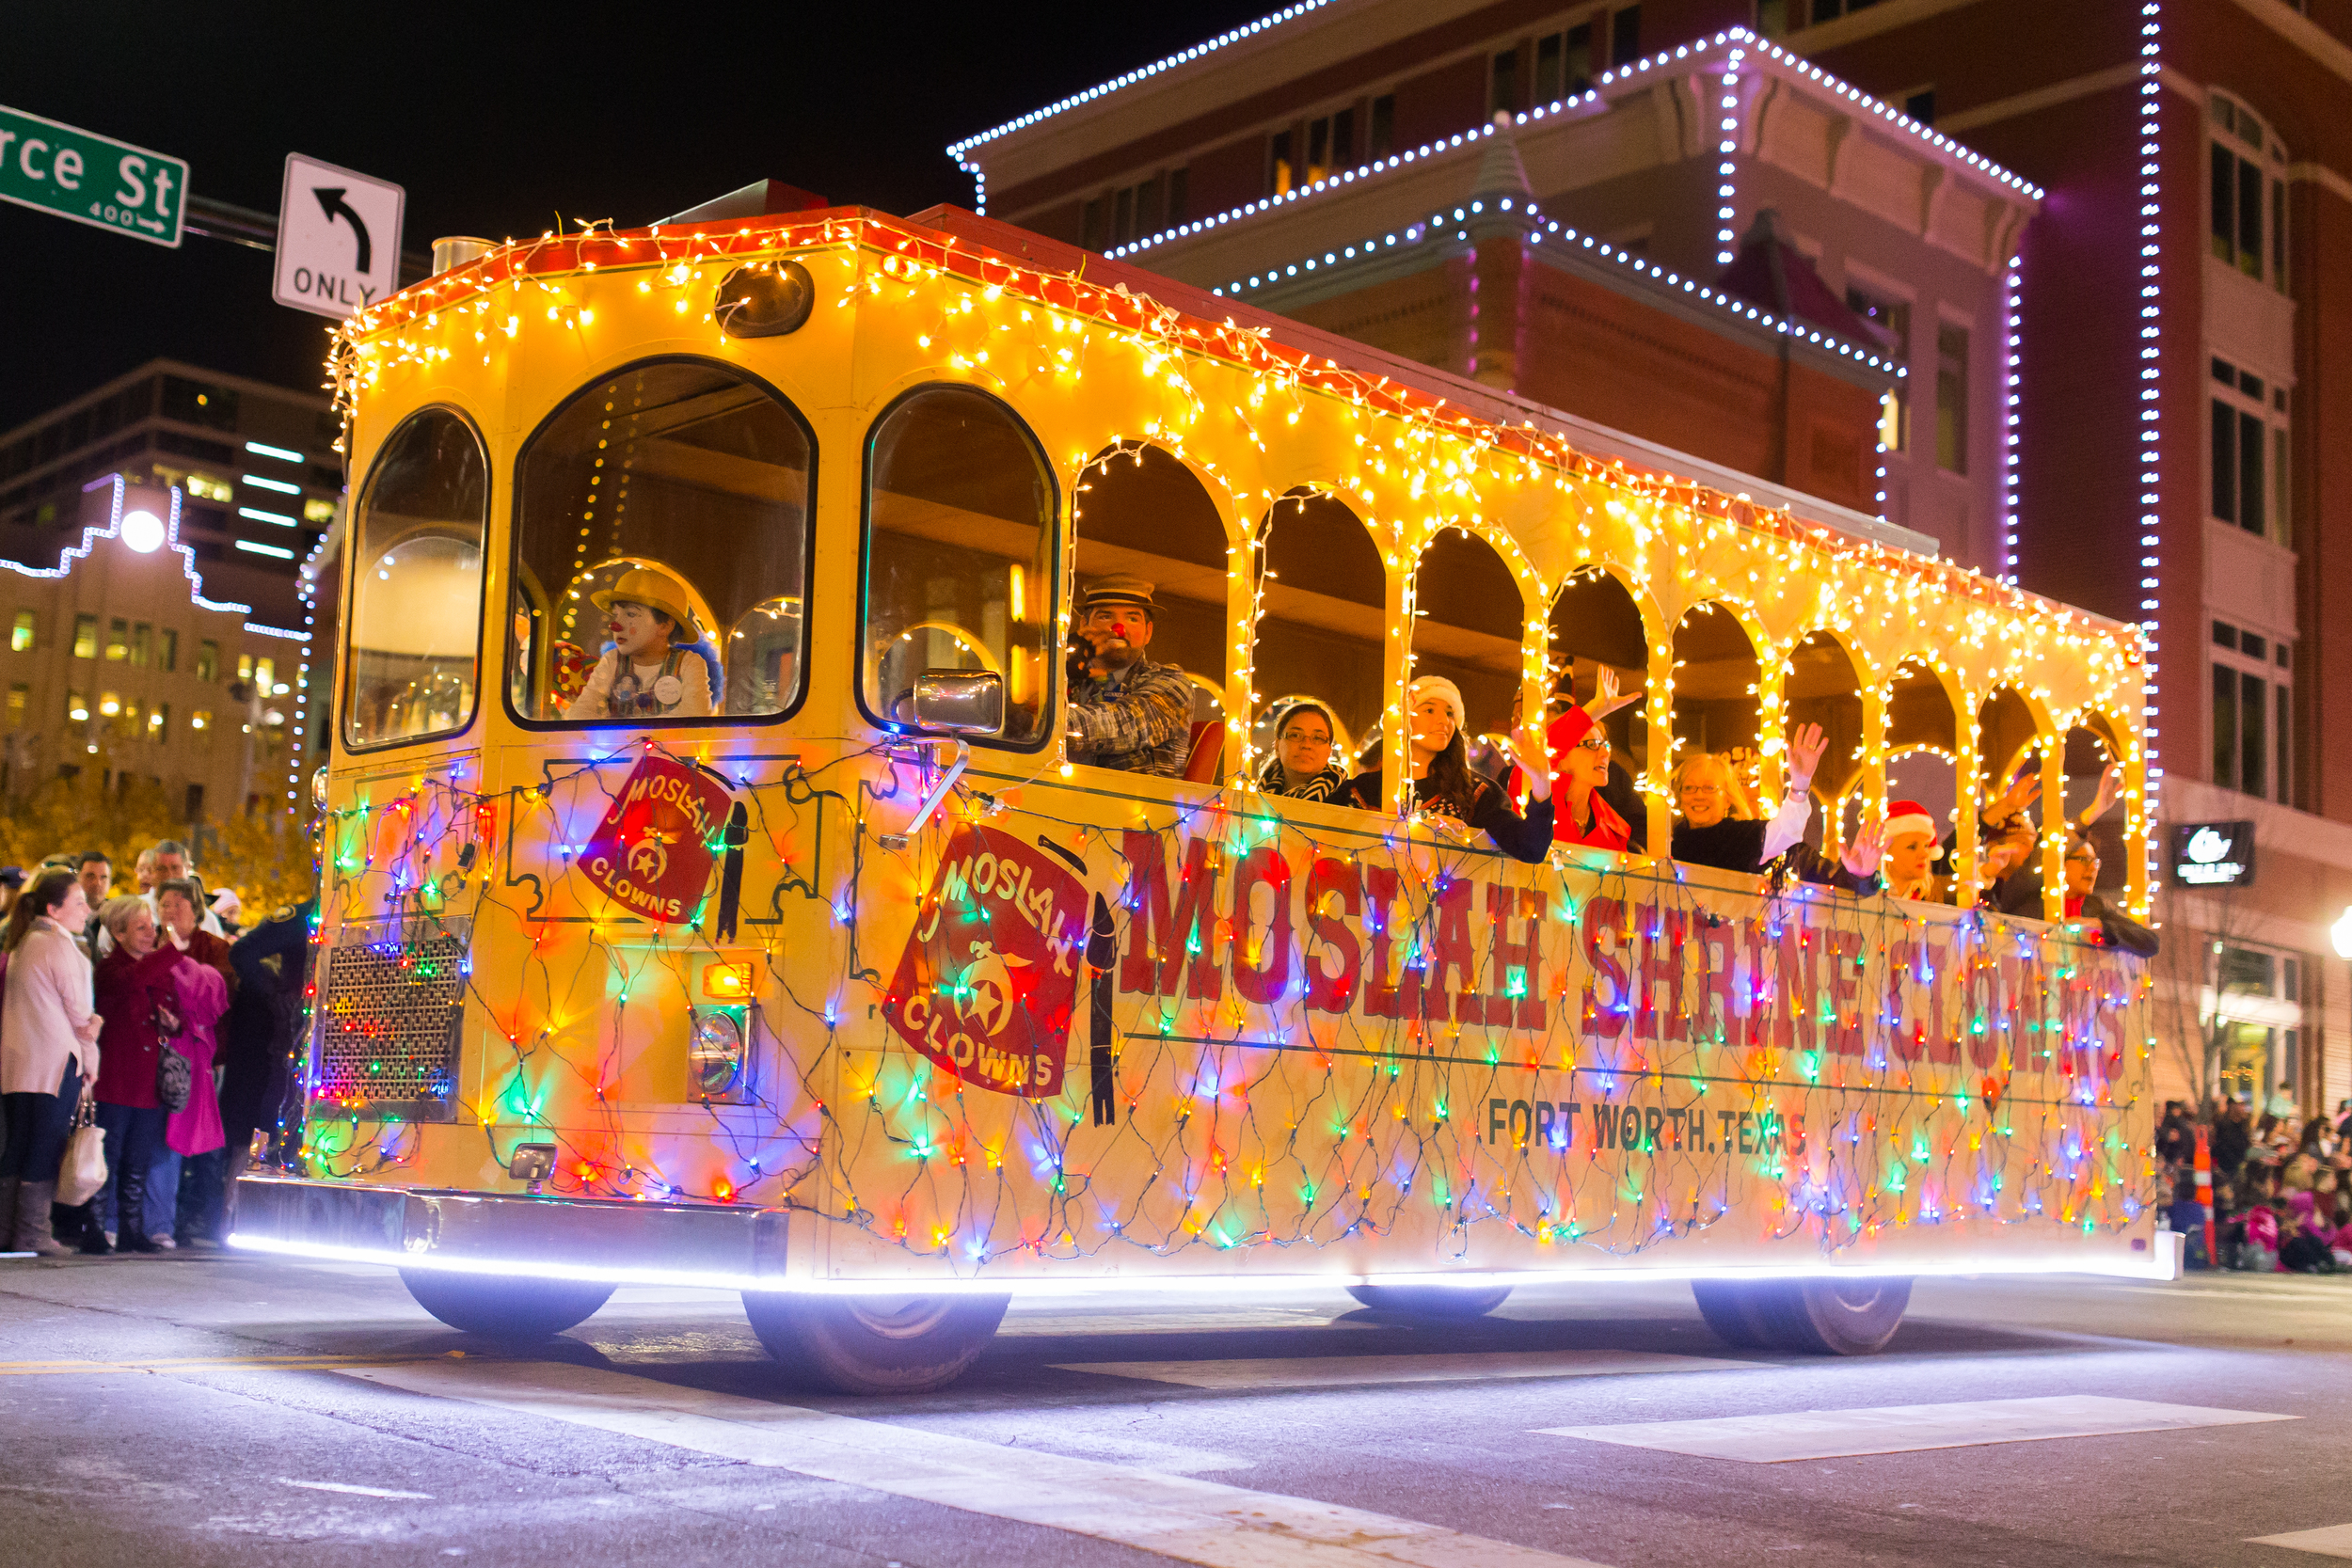 2014 XTO Energy Parade of Lights _ Moslah Shriners-9#E841.jpg